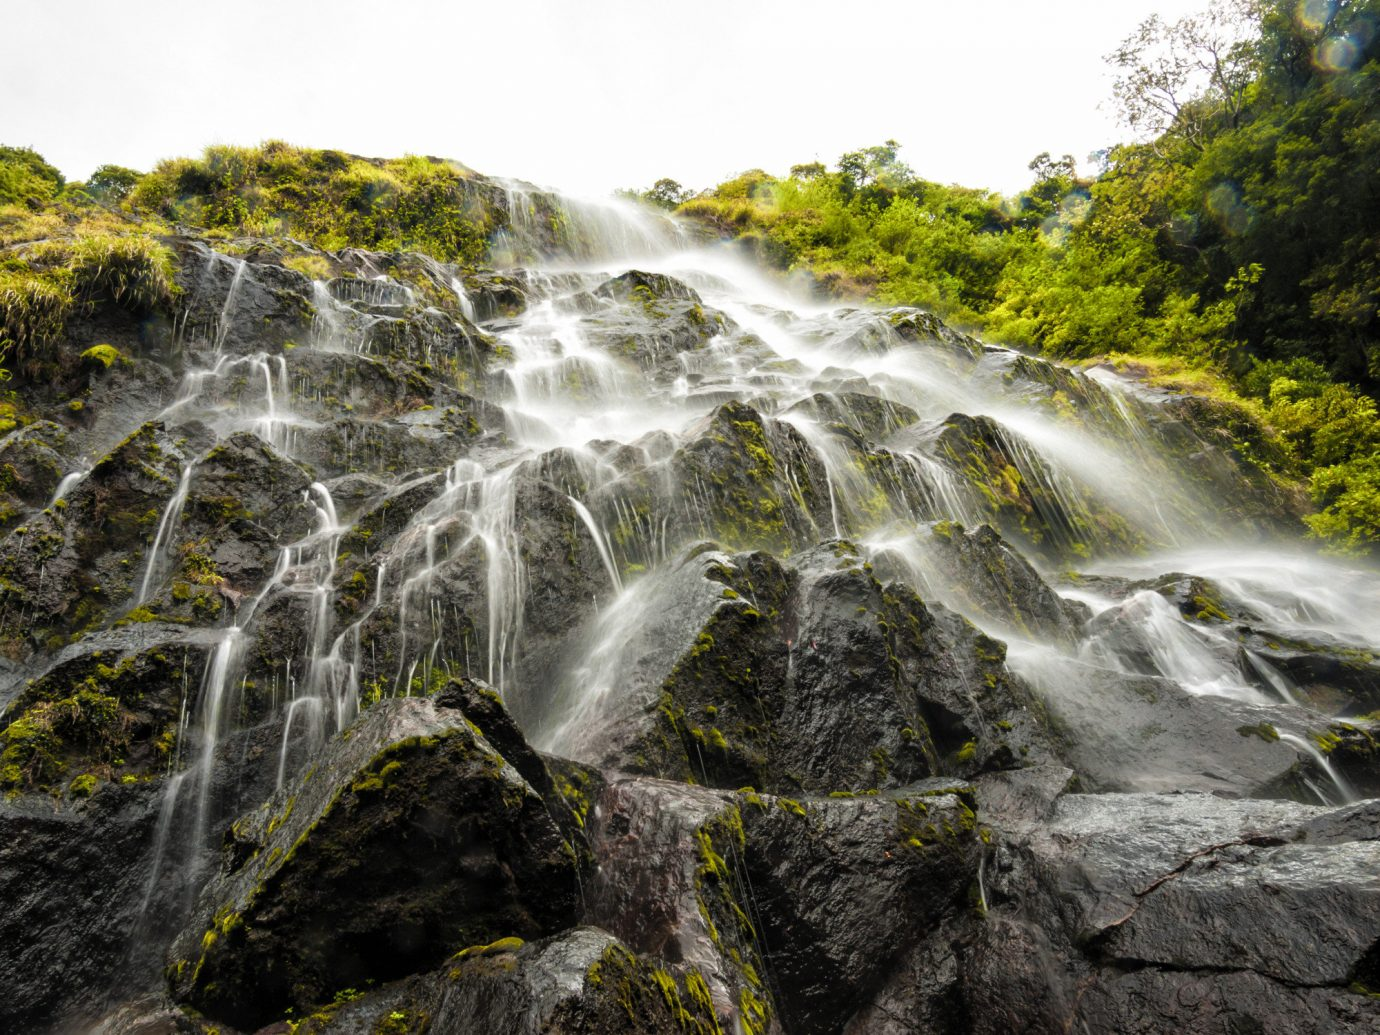 Trip Ideas Nature Waterfall water tree outdoor body of water watercourse water feature stream River rock Forest wasserfall rainforest Jungle rapid